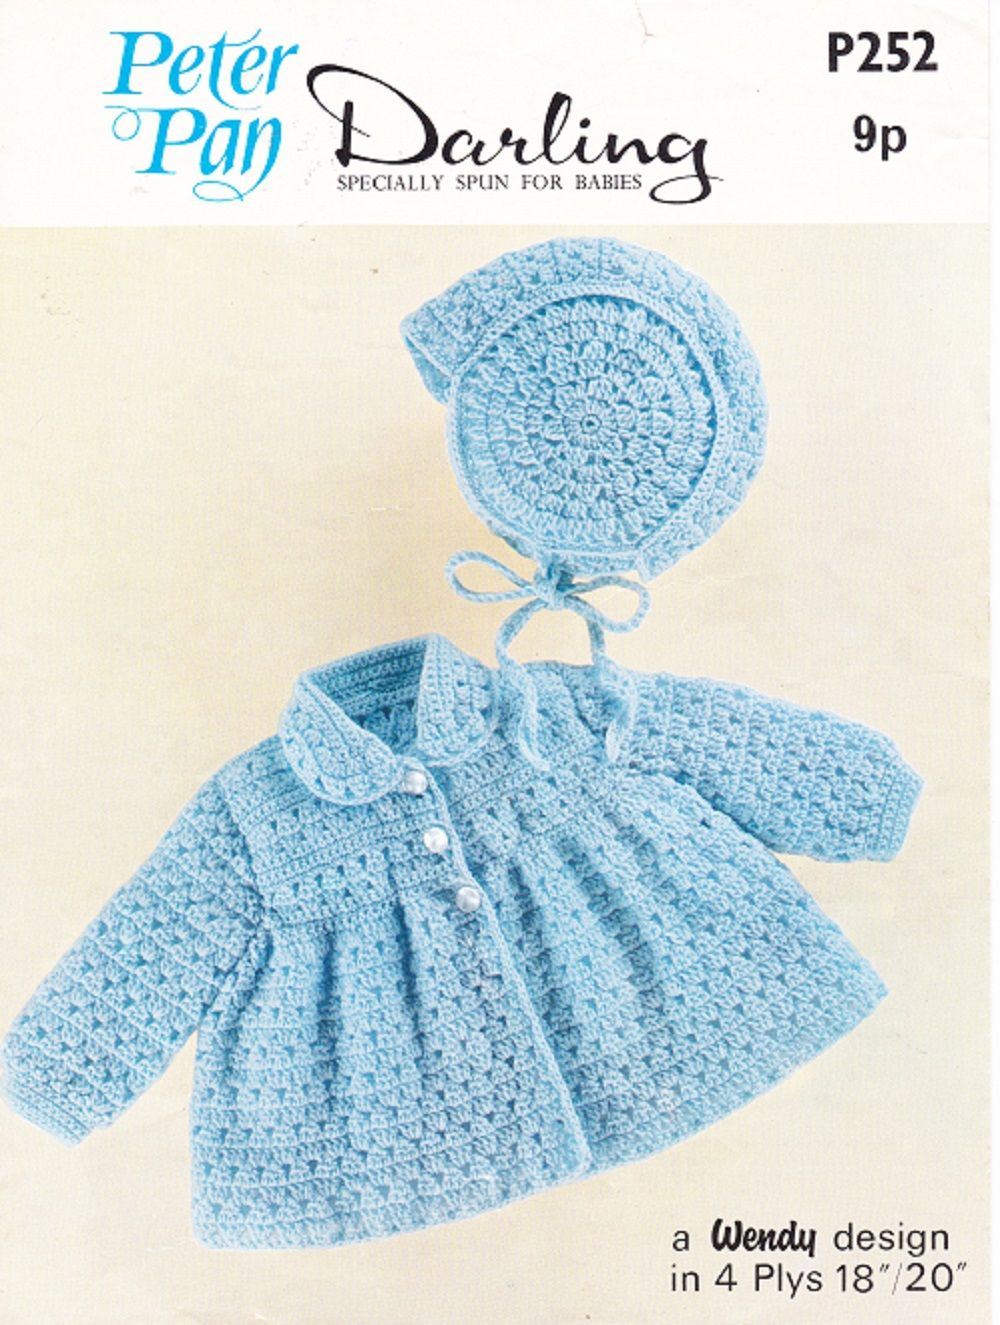 Peter pan crochet pattern p252 babys coat bonnet set peter pan crochet pattern p252 babys coat bonnet set dt1010fo